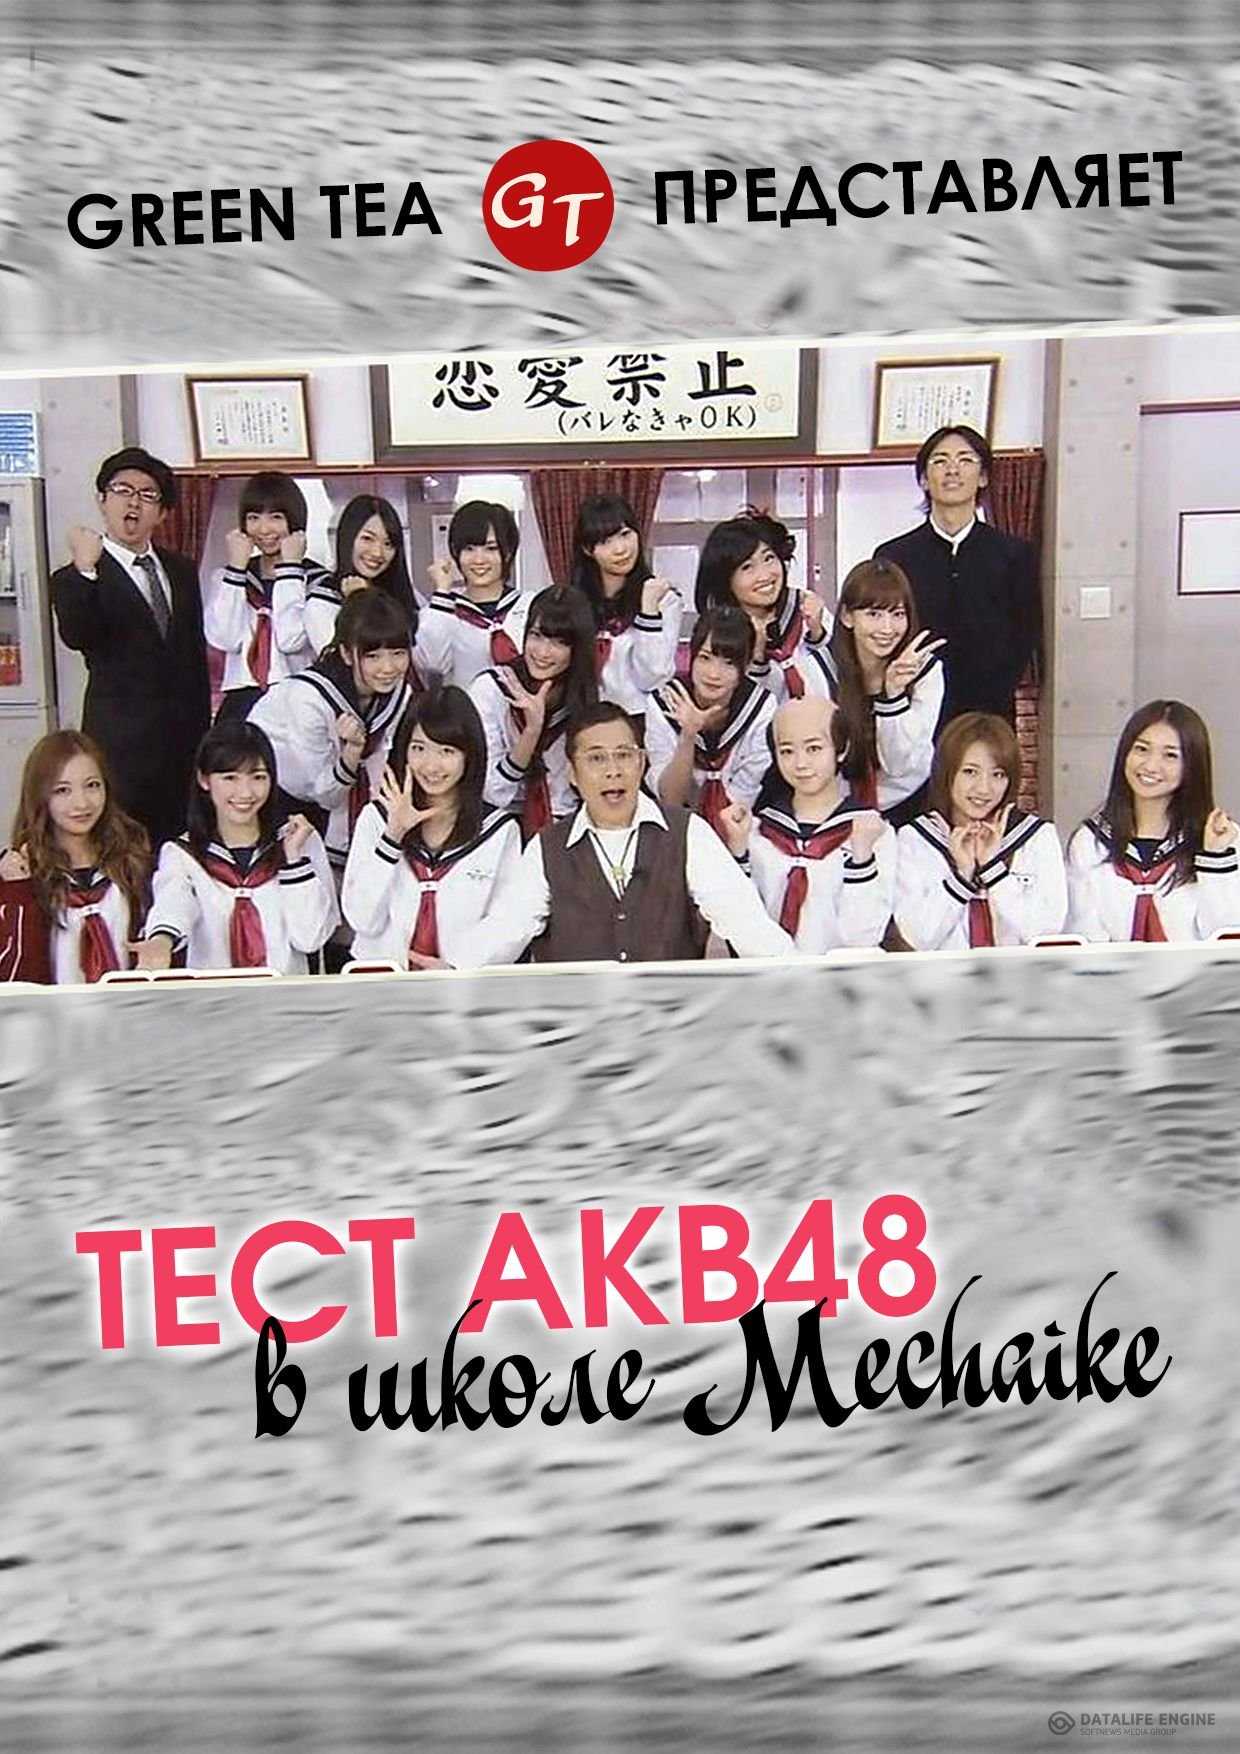 AKB48 Тест в школе Mechaike / AKB48 takes a part at Mechaike school